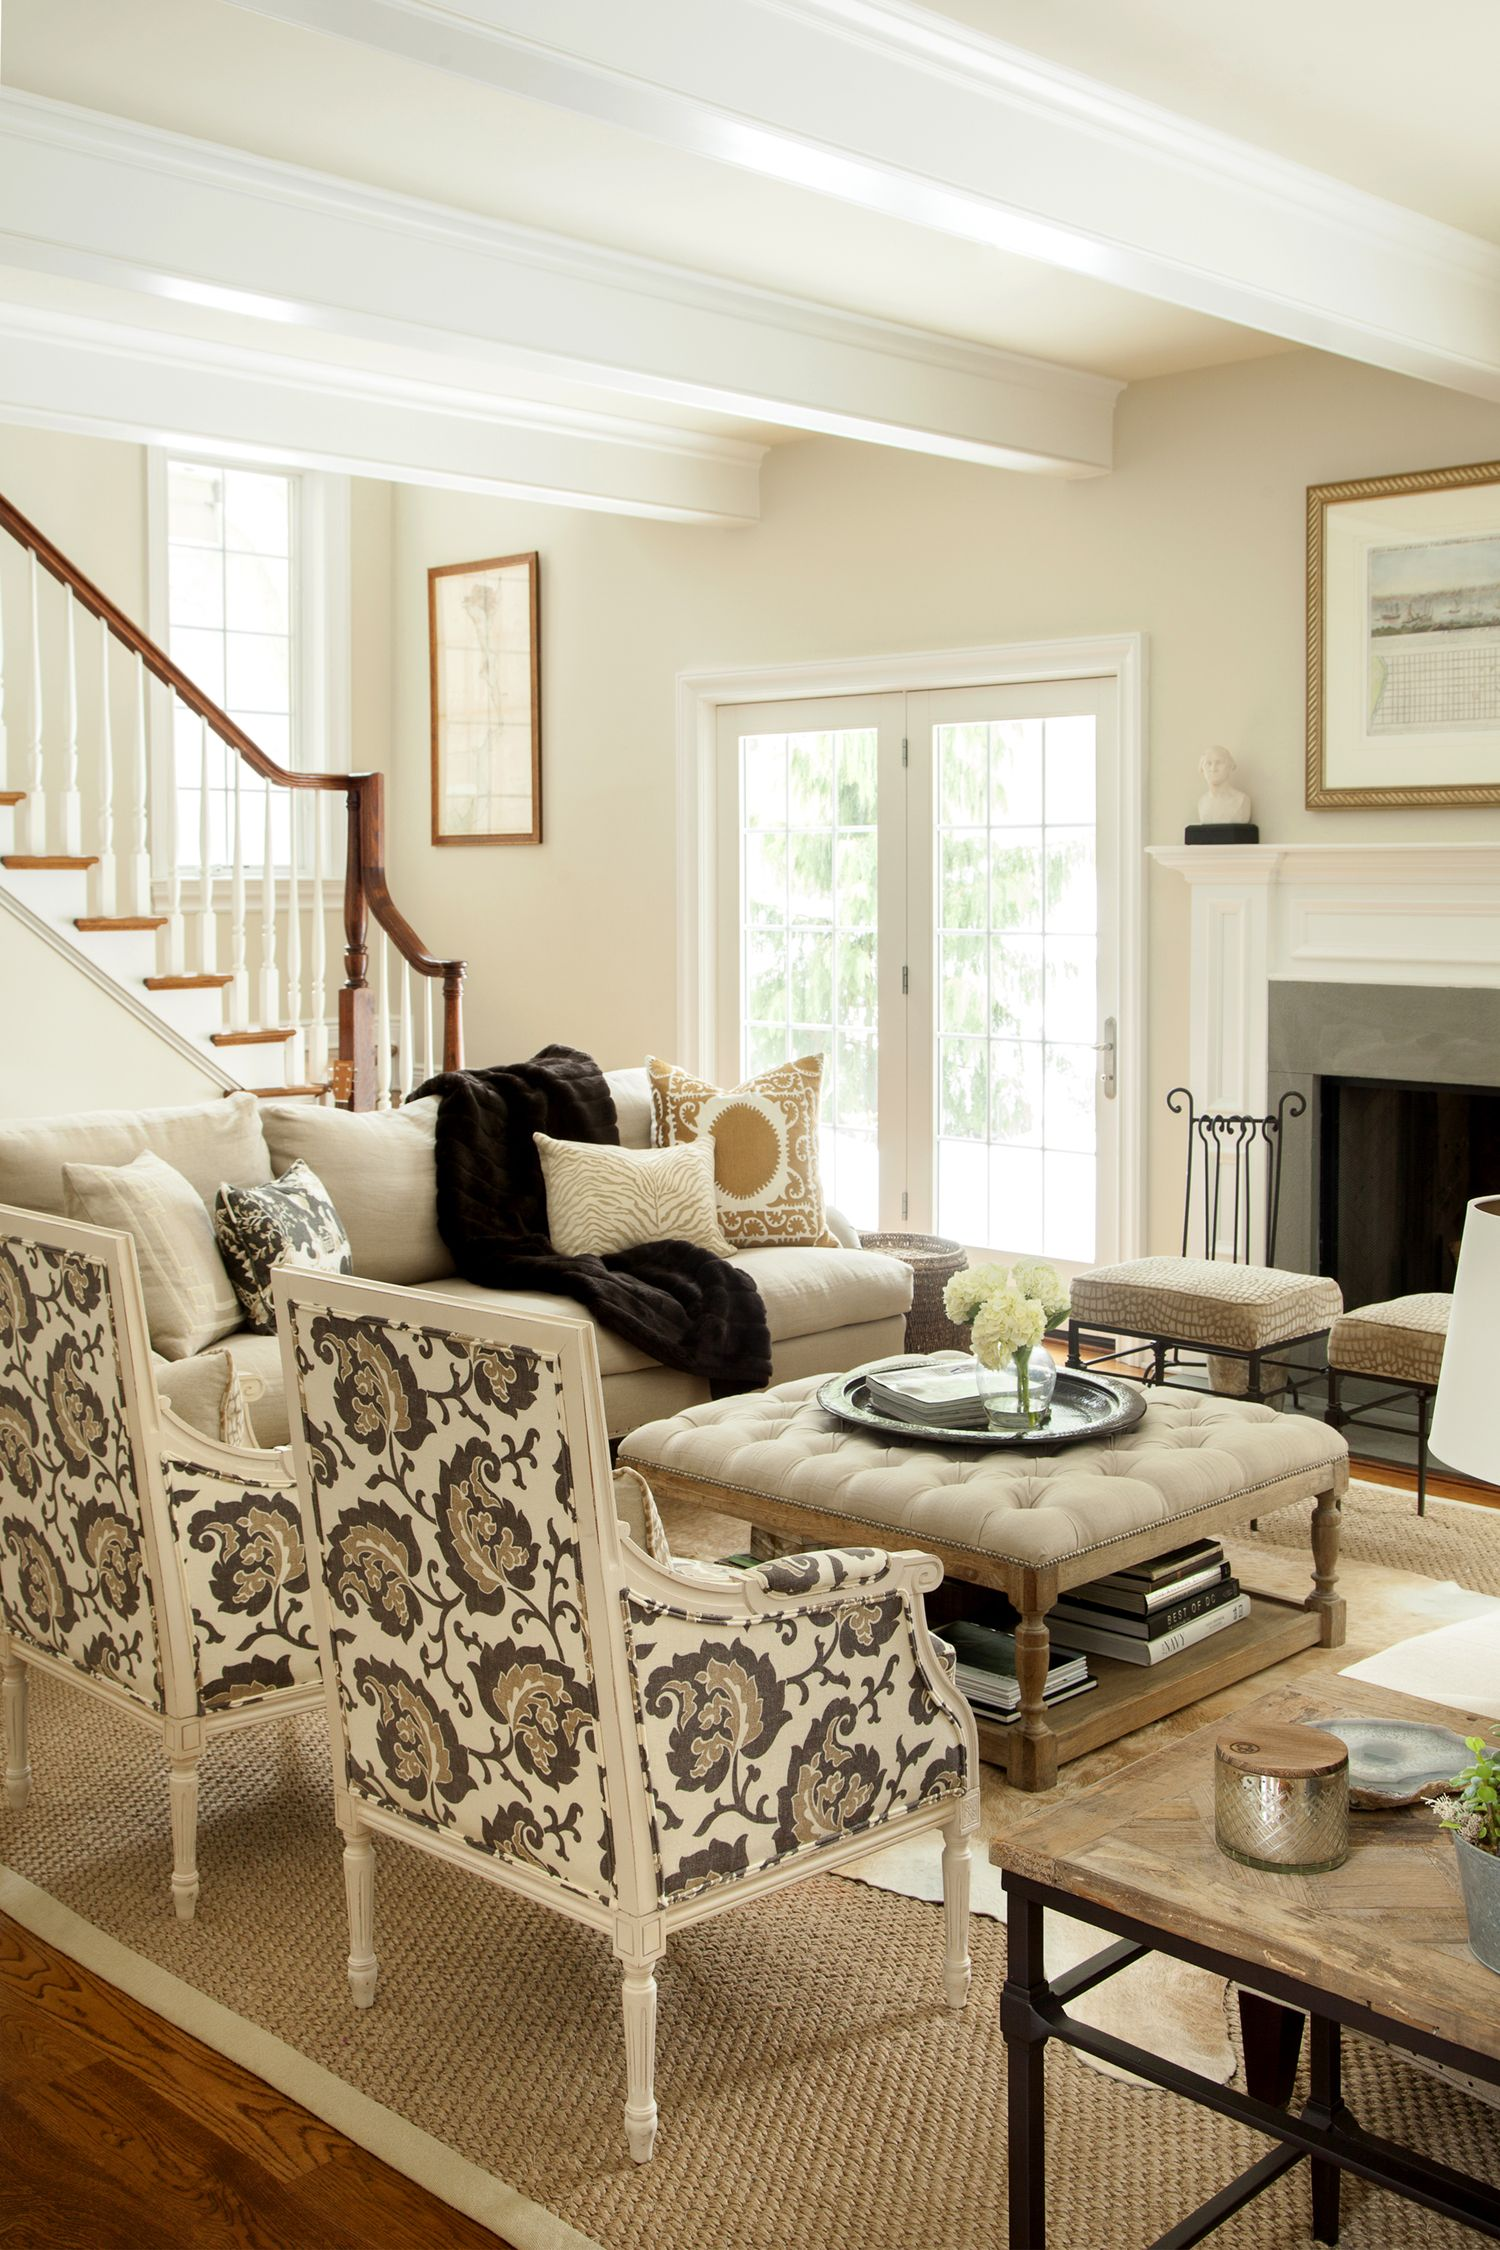 Designs For Sofas For The Living Room: Chestnut Hill Family Room Before And After